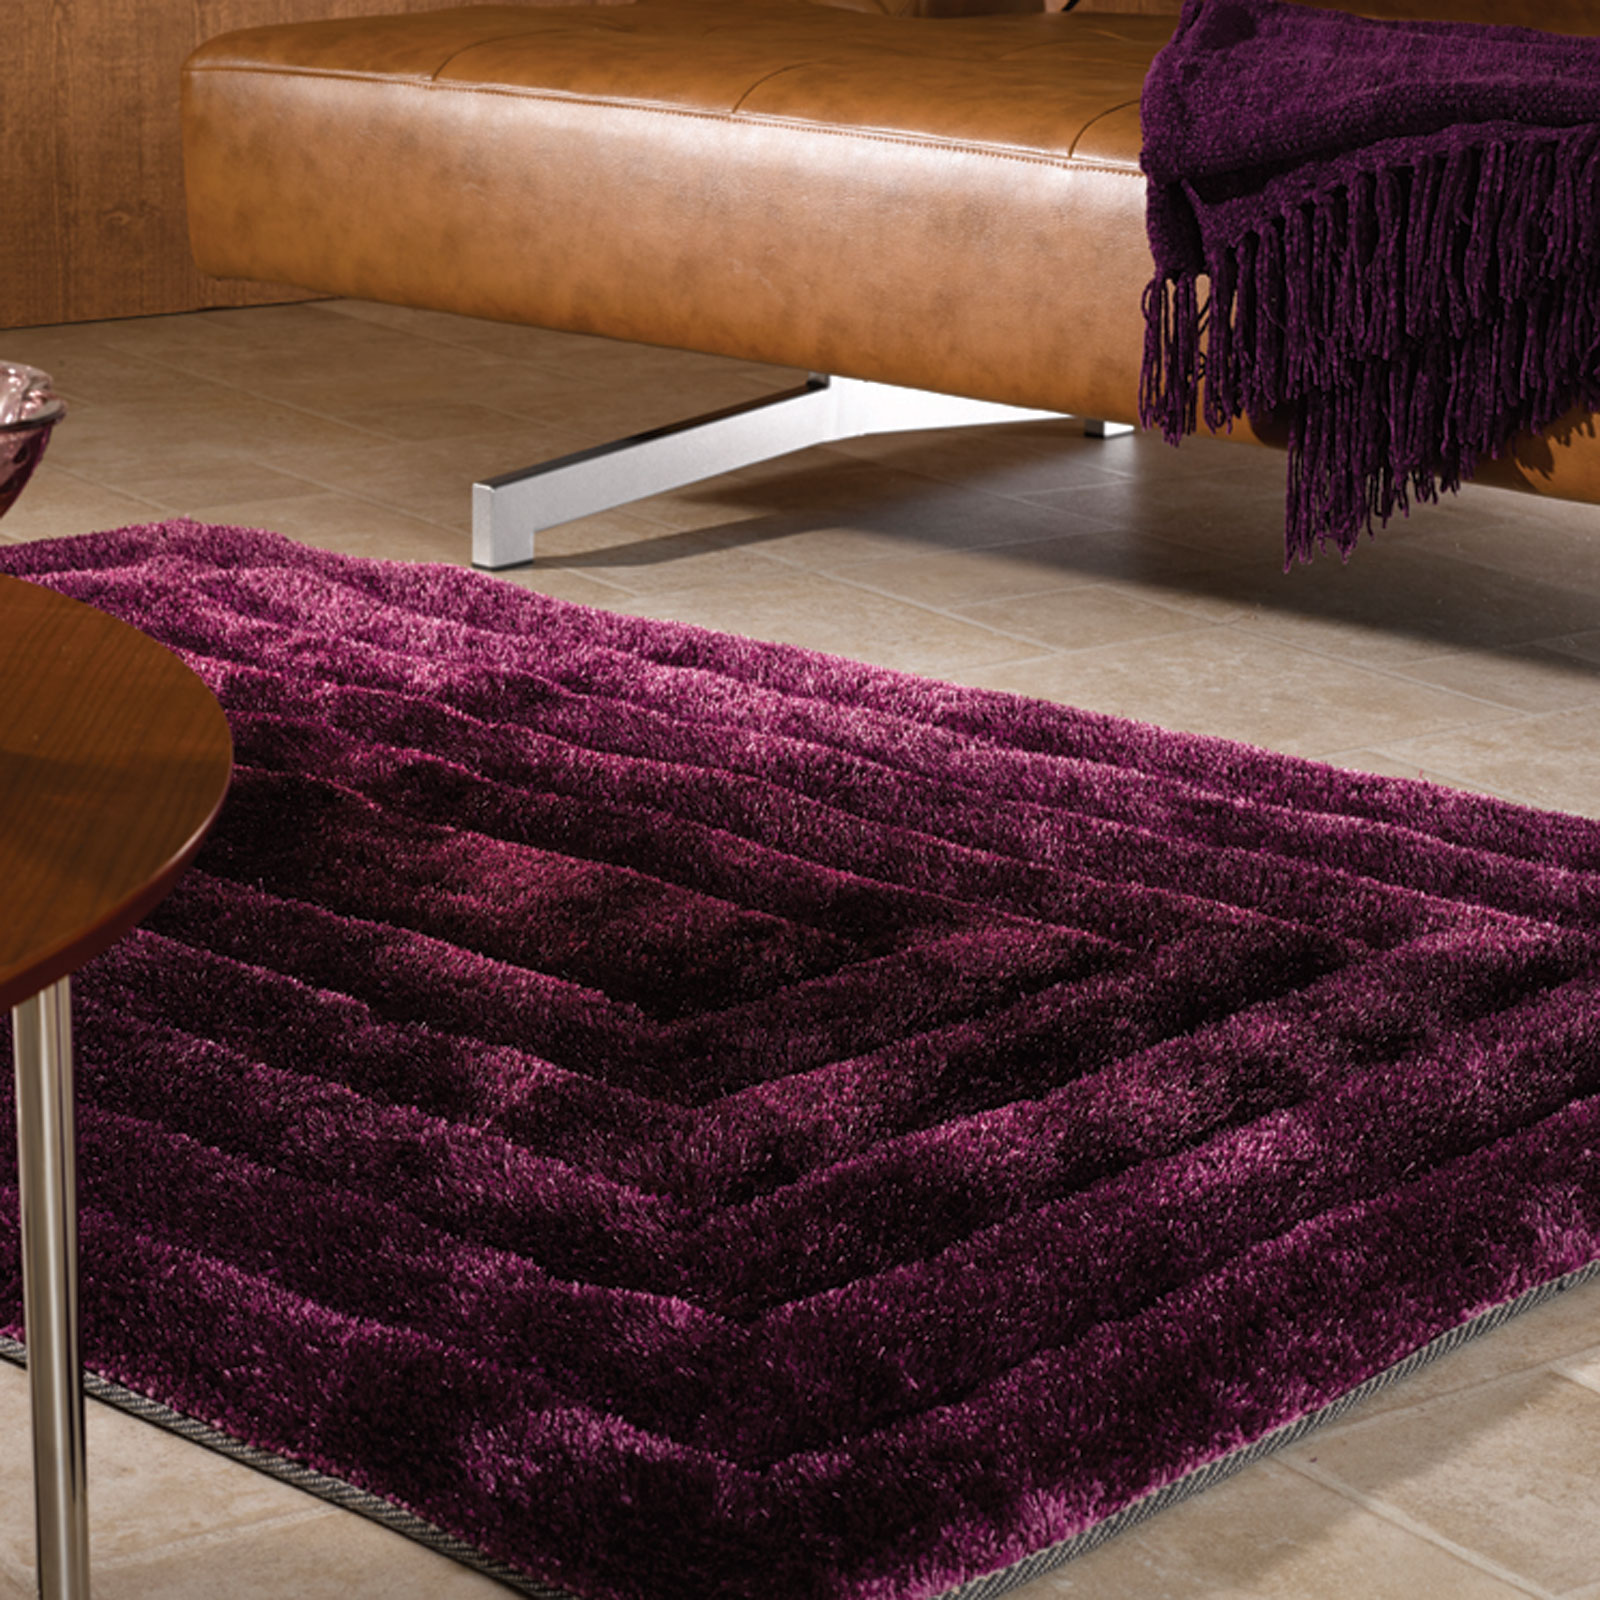 Verge Ridge Rugs in Aubergine